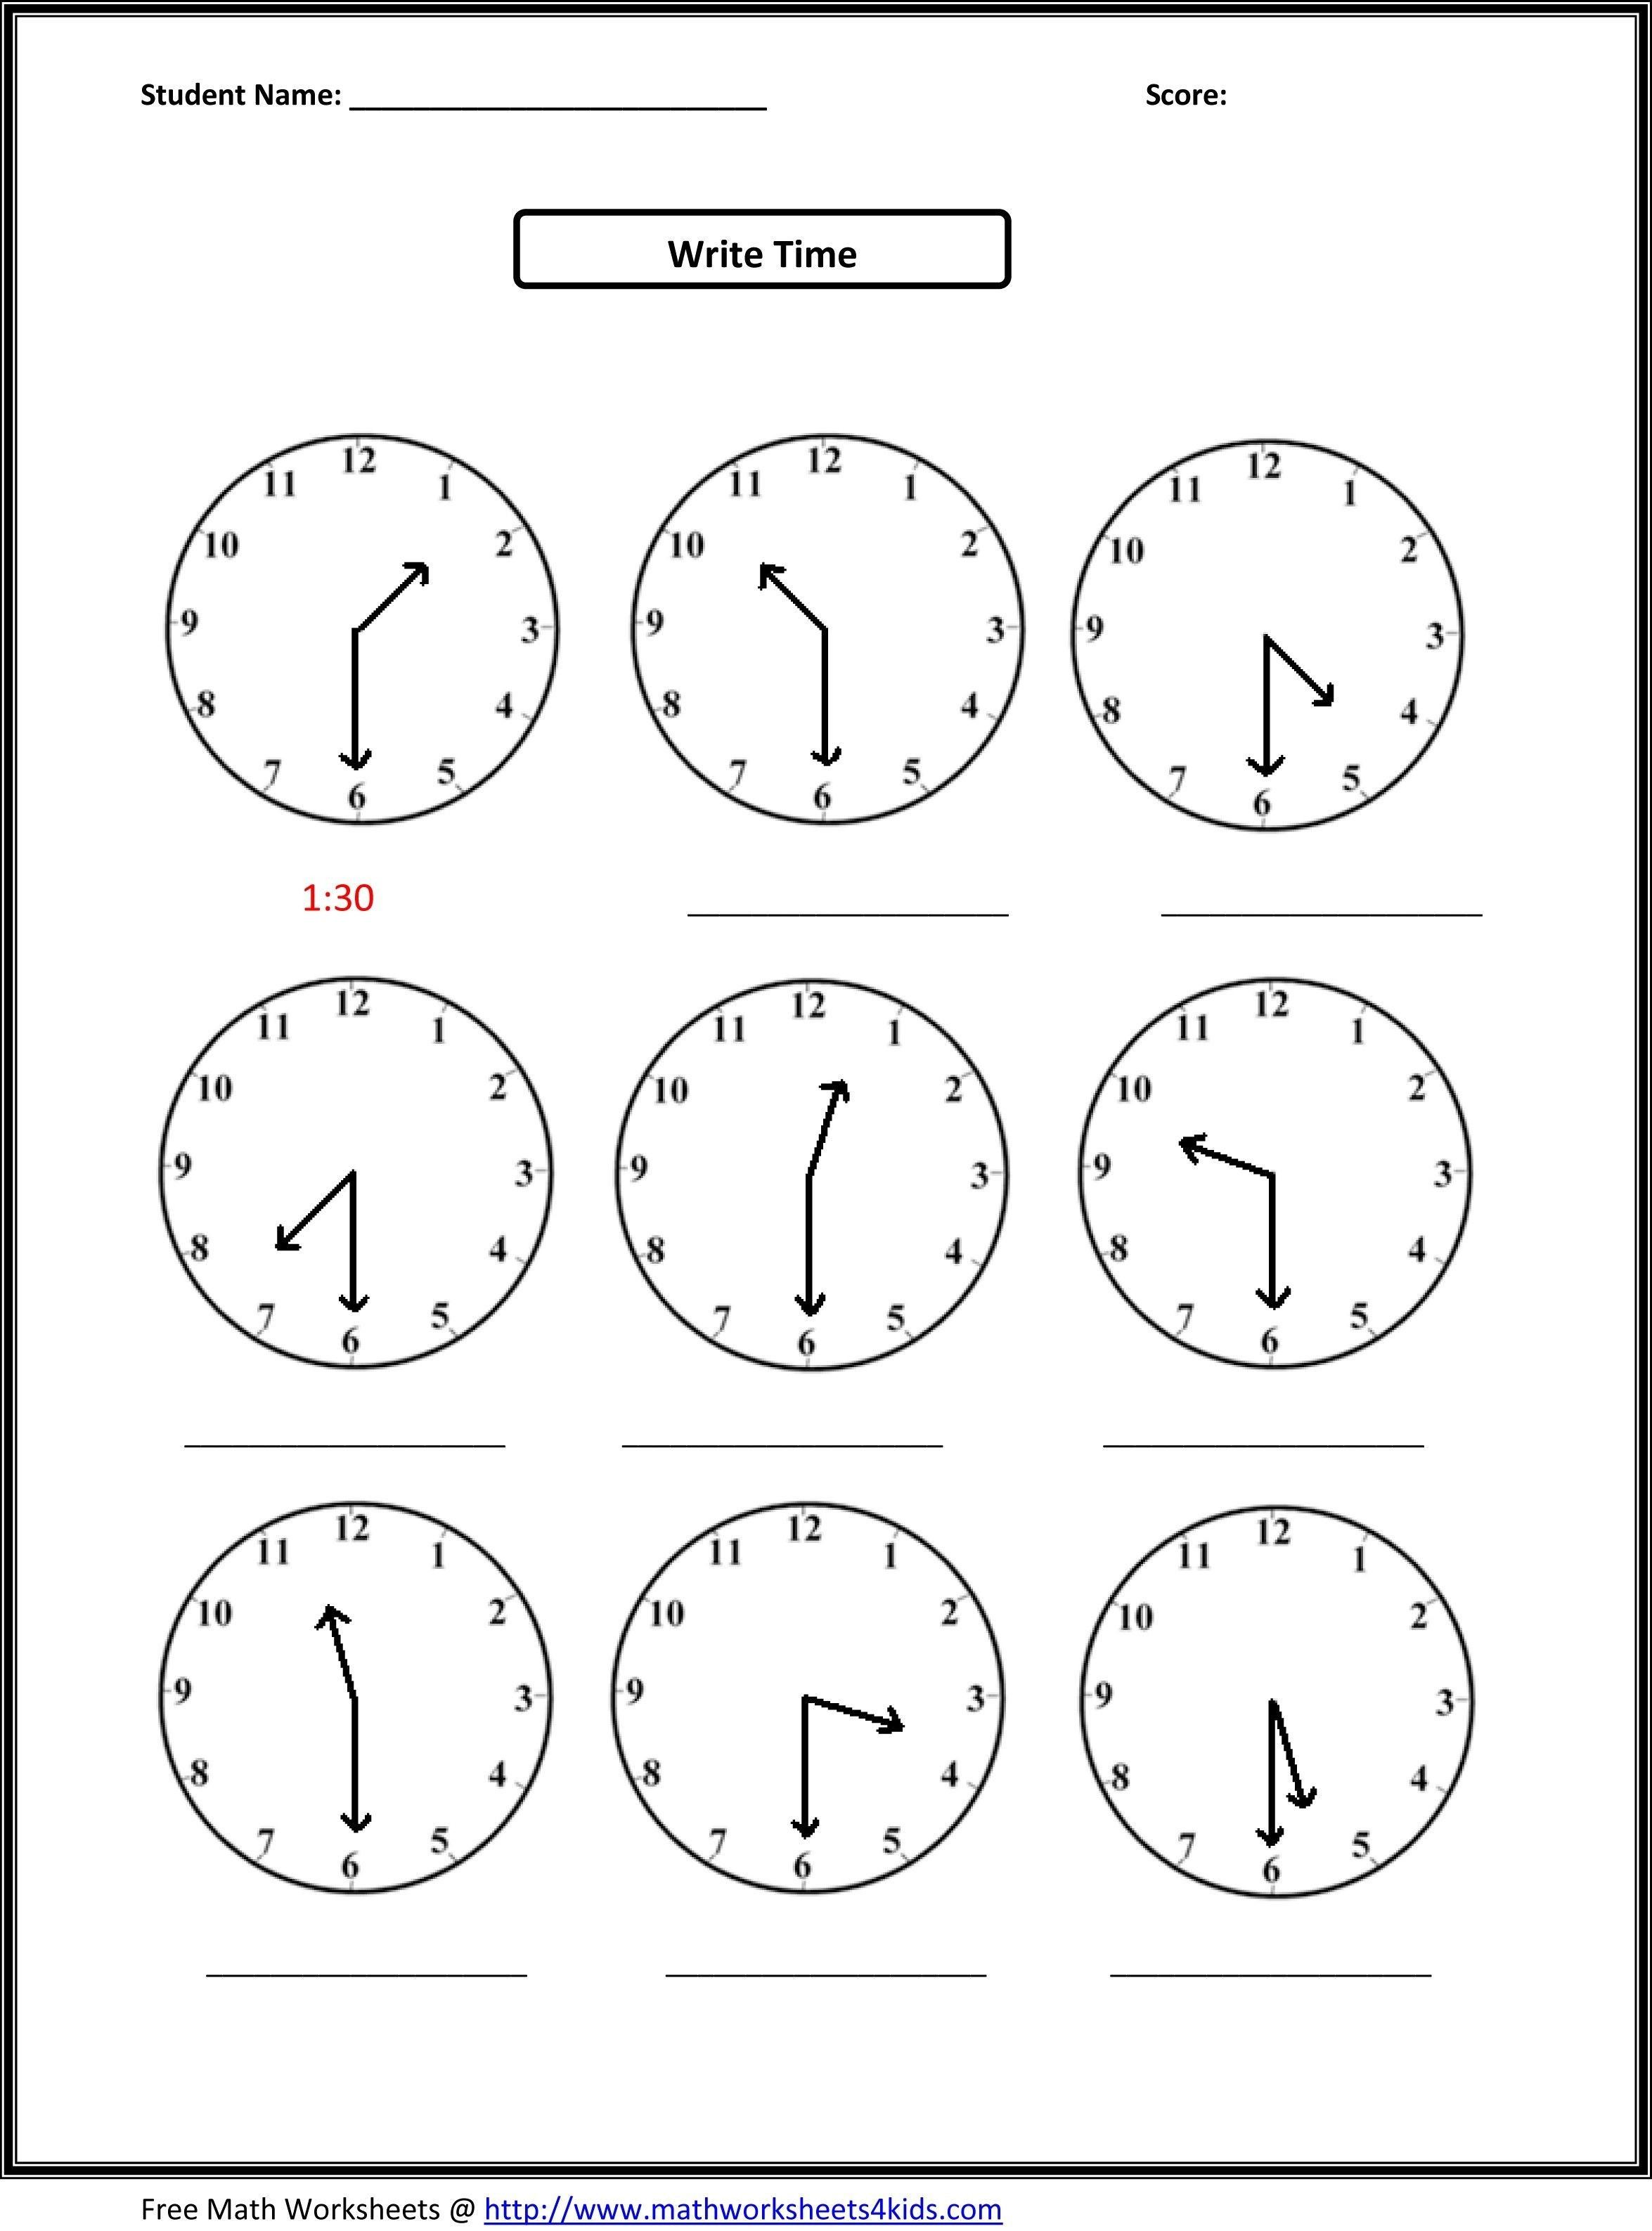 Telling Time Worksheets Ks3 New Clock Grade 3 Free Maths Printables | Printable Time Worksheets Grade 3